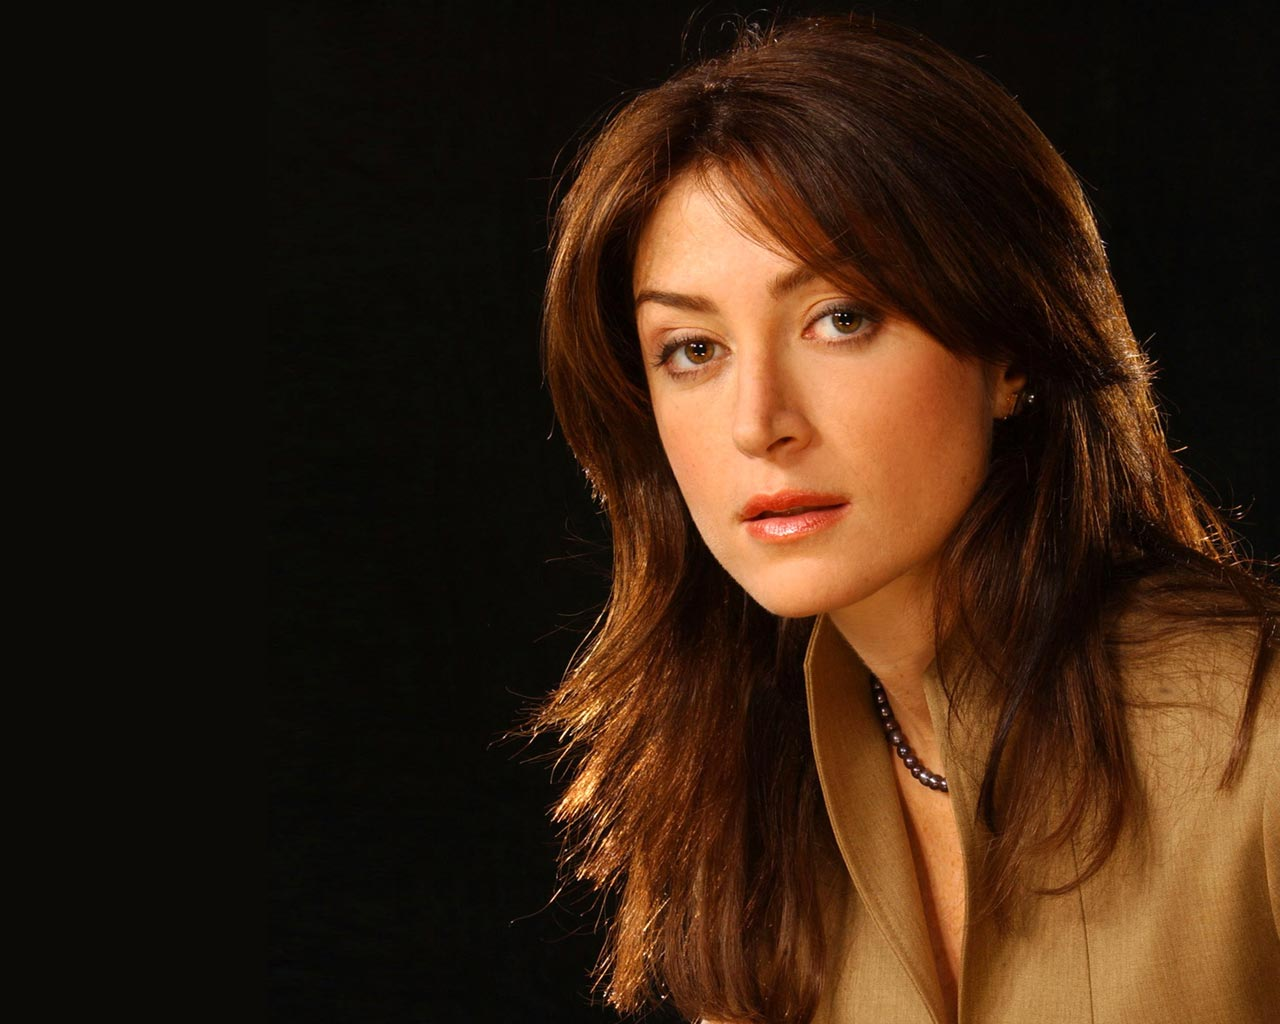 Download this Sasha Alexander Wallpaper picture